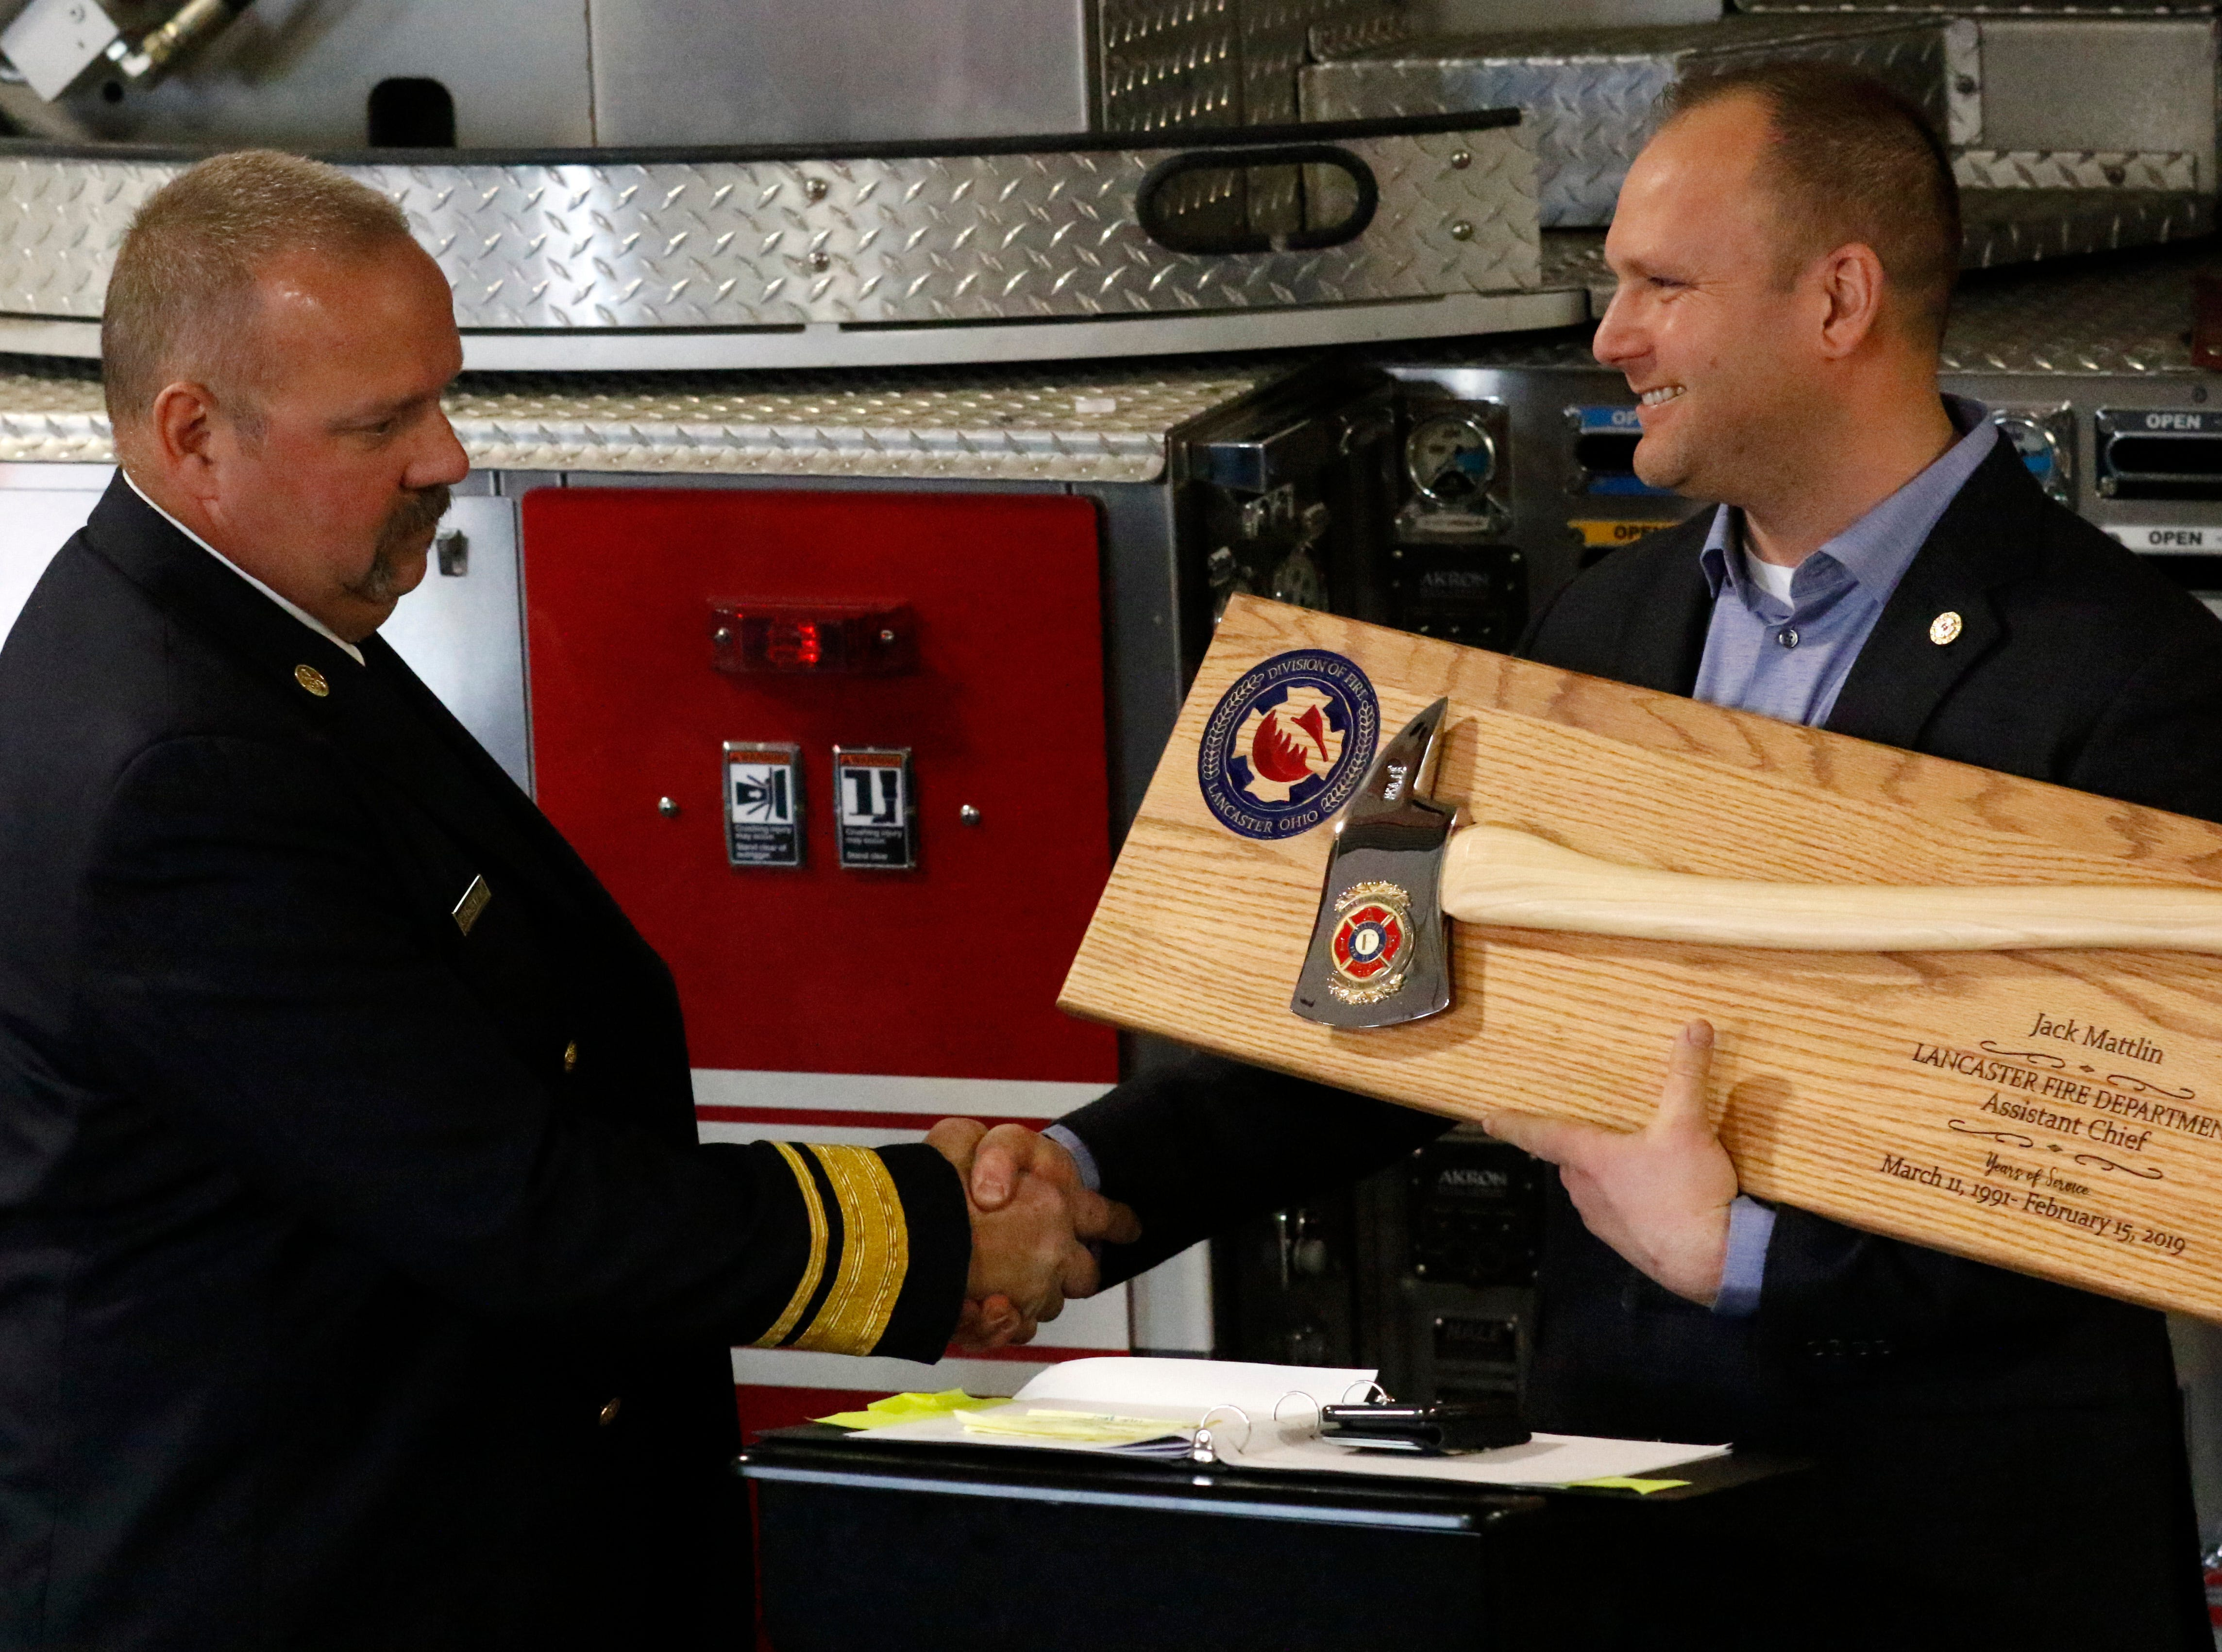 Assistant Chief Jack Mattlin, left, shakes hands Pete Anson, president of the International Association of Firefighters, Local 291 union, Friday afternoon, Feb. 15, 2019, at Engine House One in Lancaster. Mattlin retired from the fire department after 28 years.